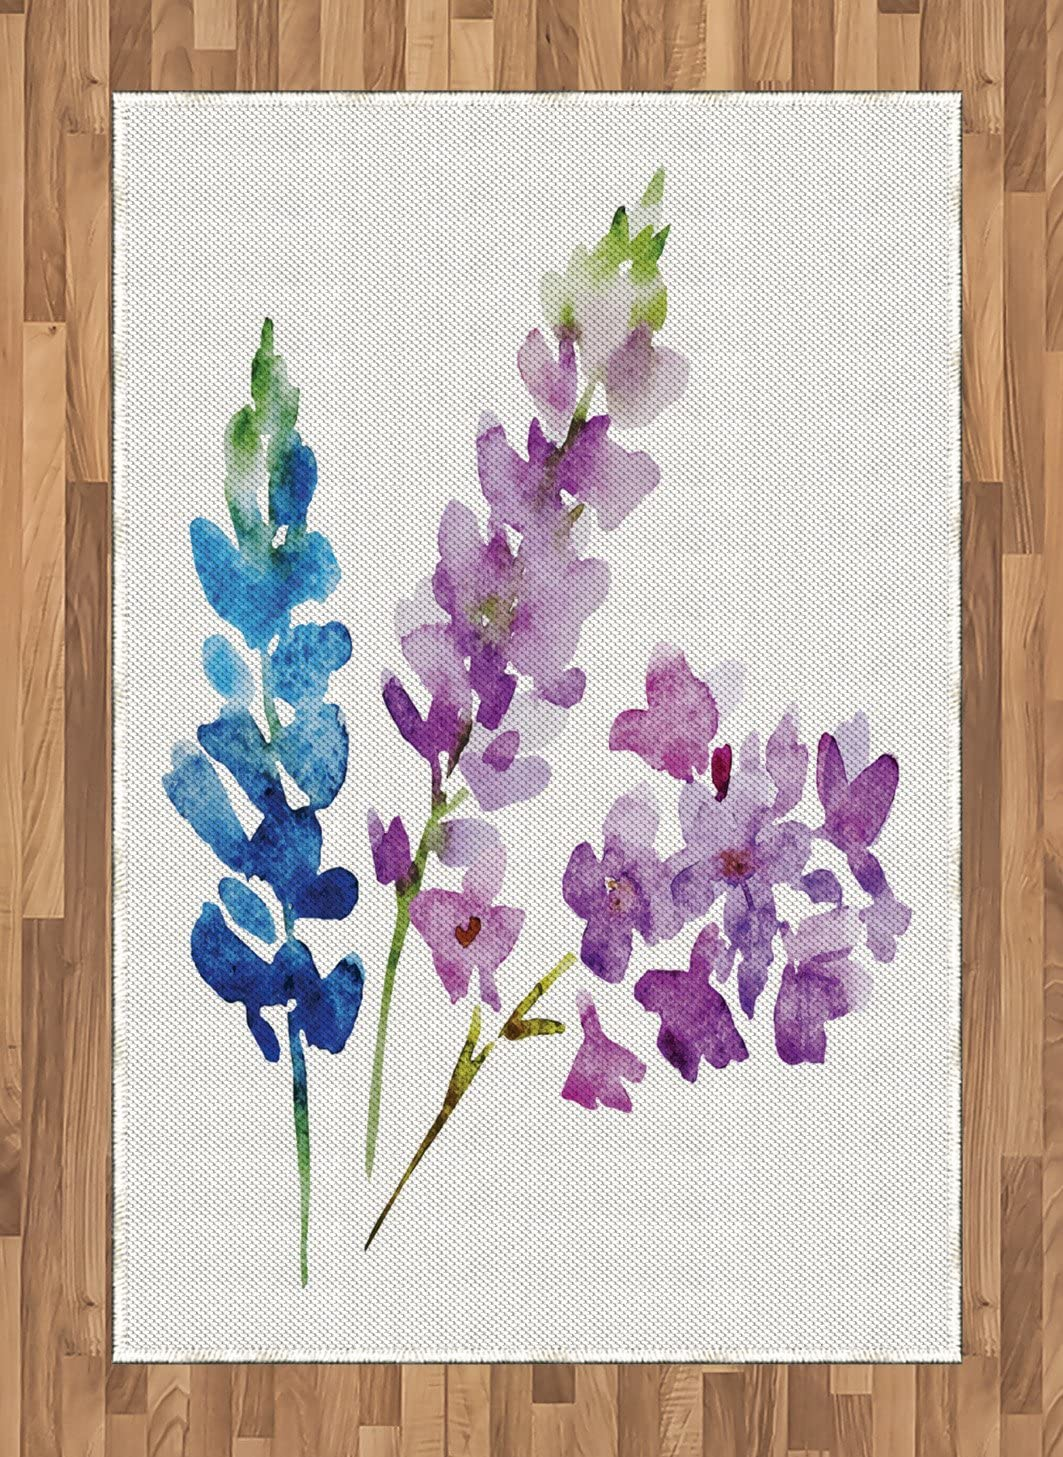 Ambesonne Floral Area Rug, Branches of Watercolor Flowers in Spring Color Shades Lavender and Violet Bouquet, Flat Woven Accent Rug for Living Room Bedroom Dining Room, 4 X 5.7 , Multicolor